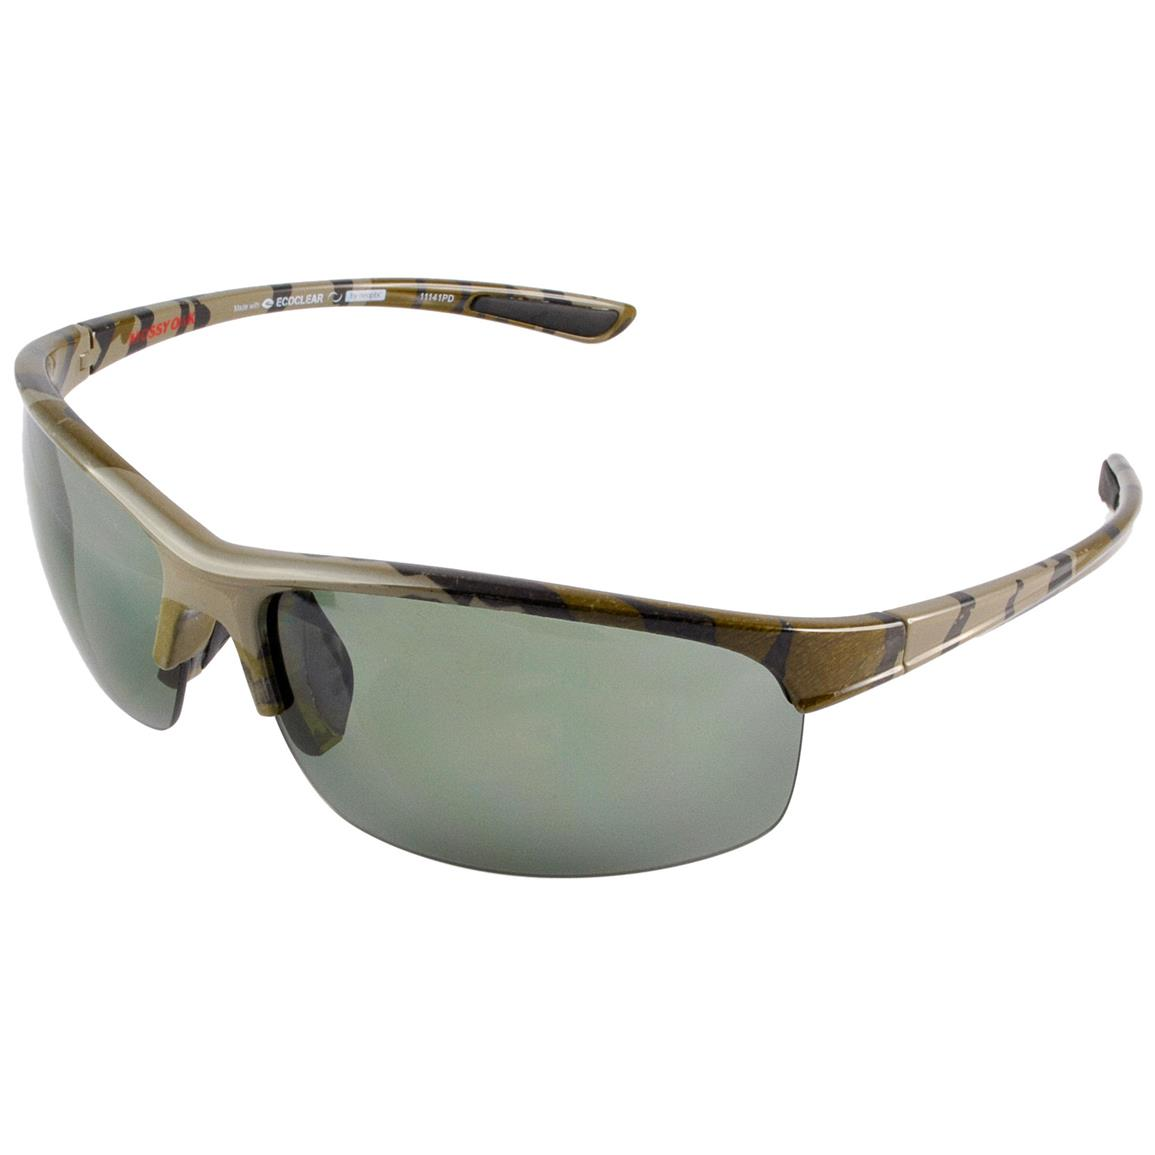 Neoptx Mossy Oak Men's Tournament Polarized Sunglasses, Bottomland